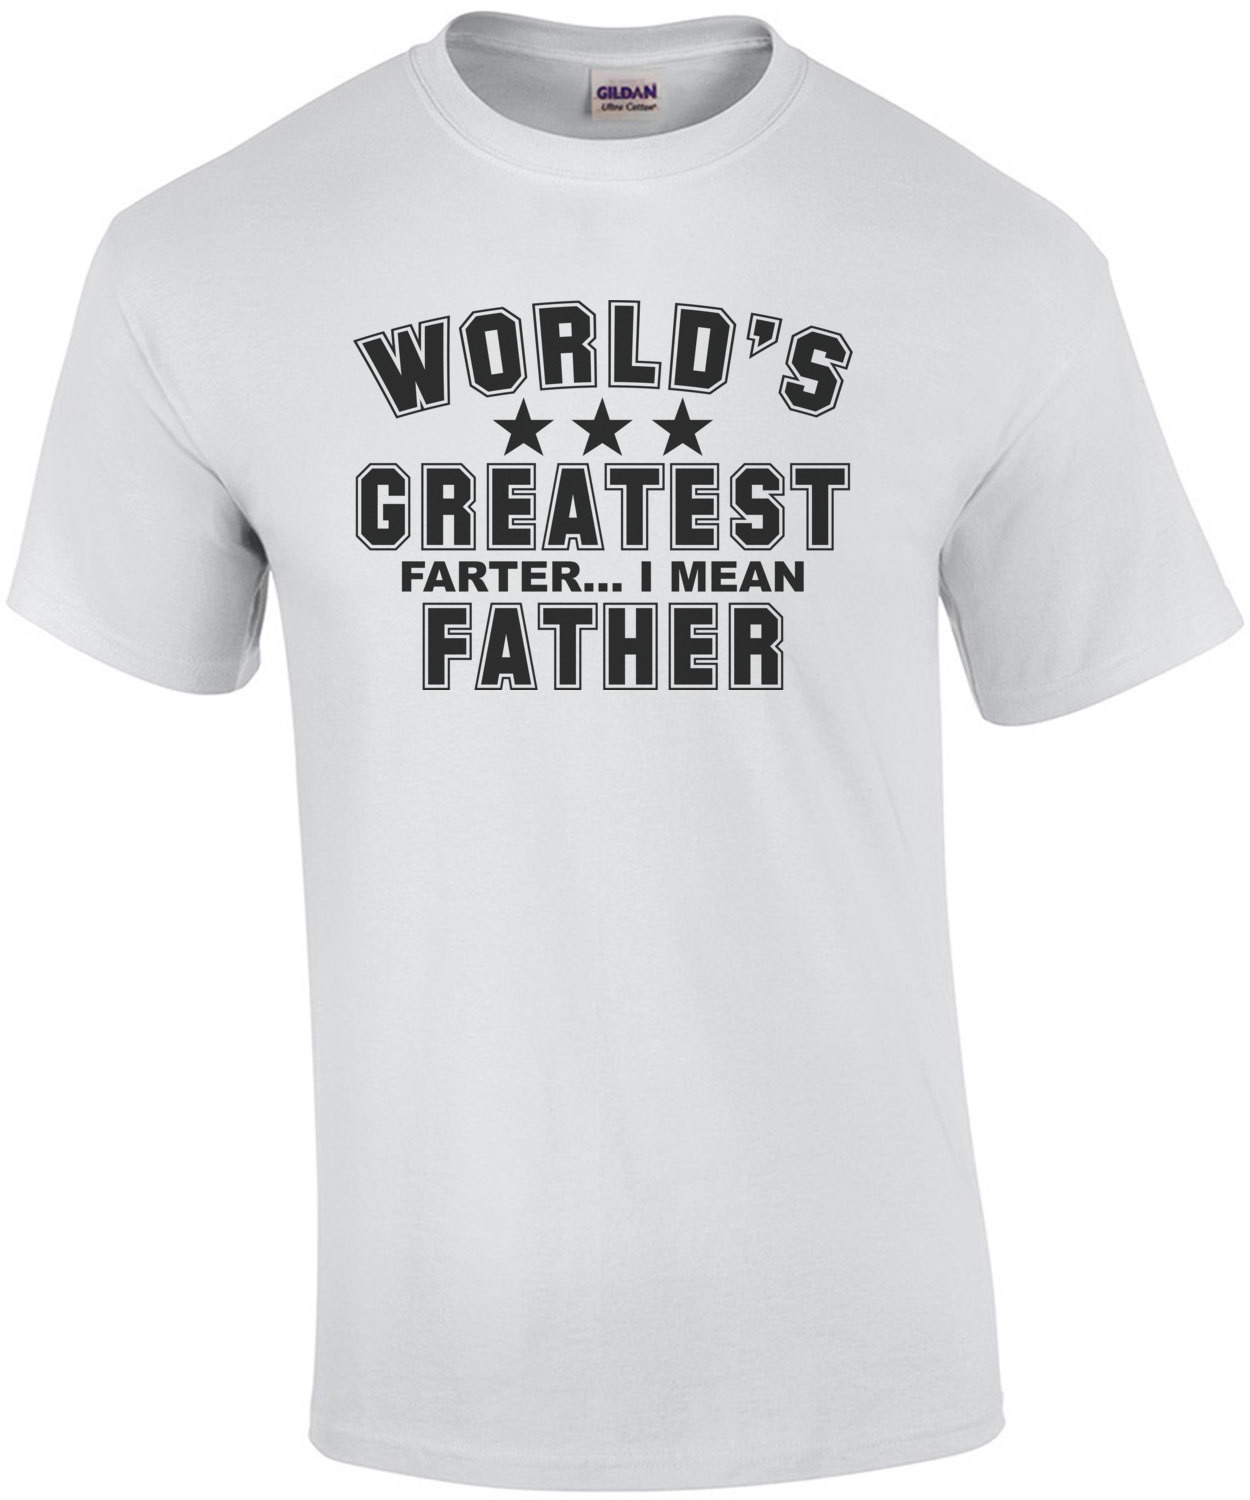 World's Great Farter... I mean Father Shirt